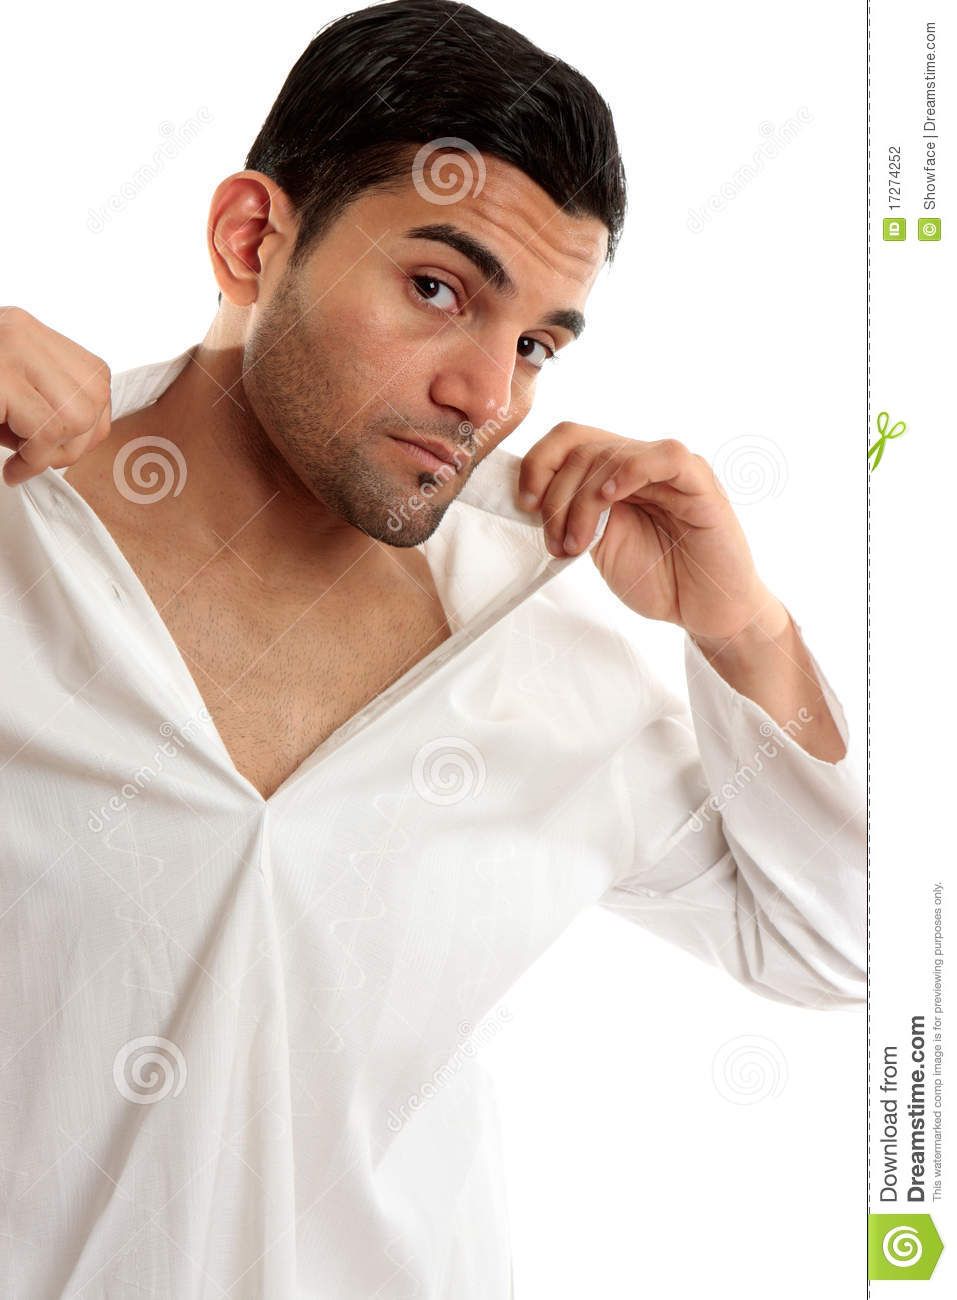 Man Dressing Or Undressing Stock Photography